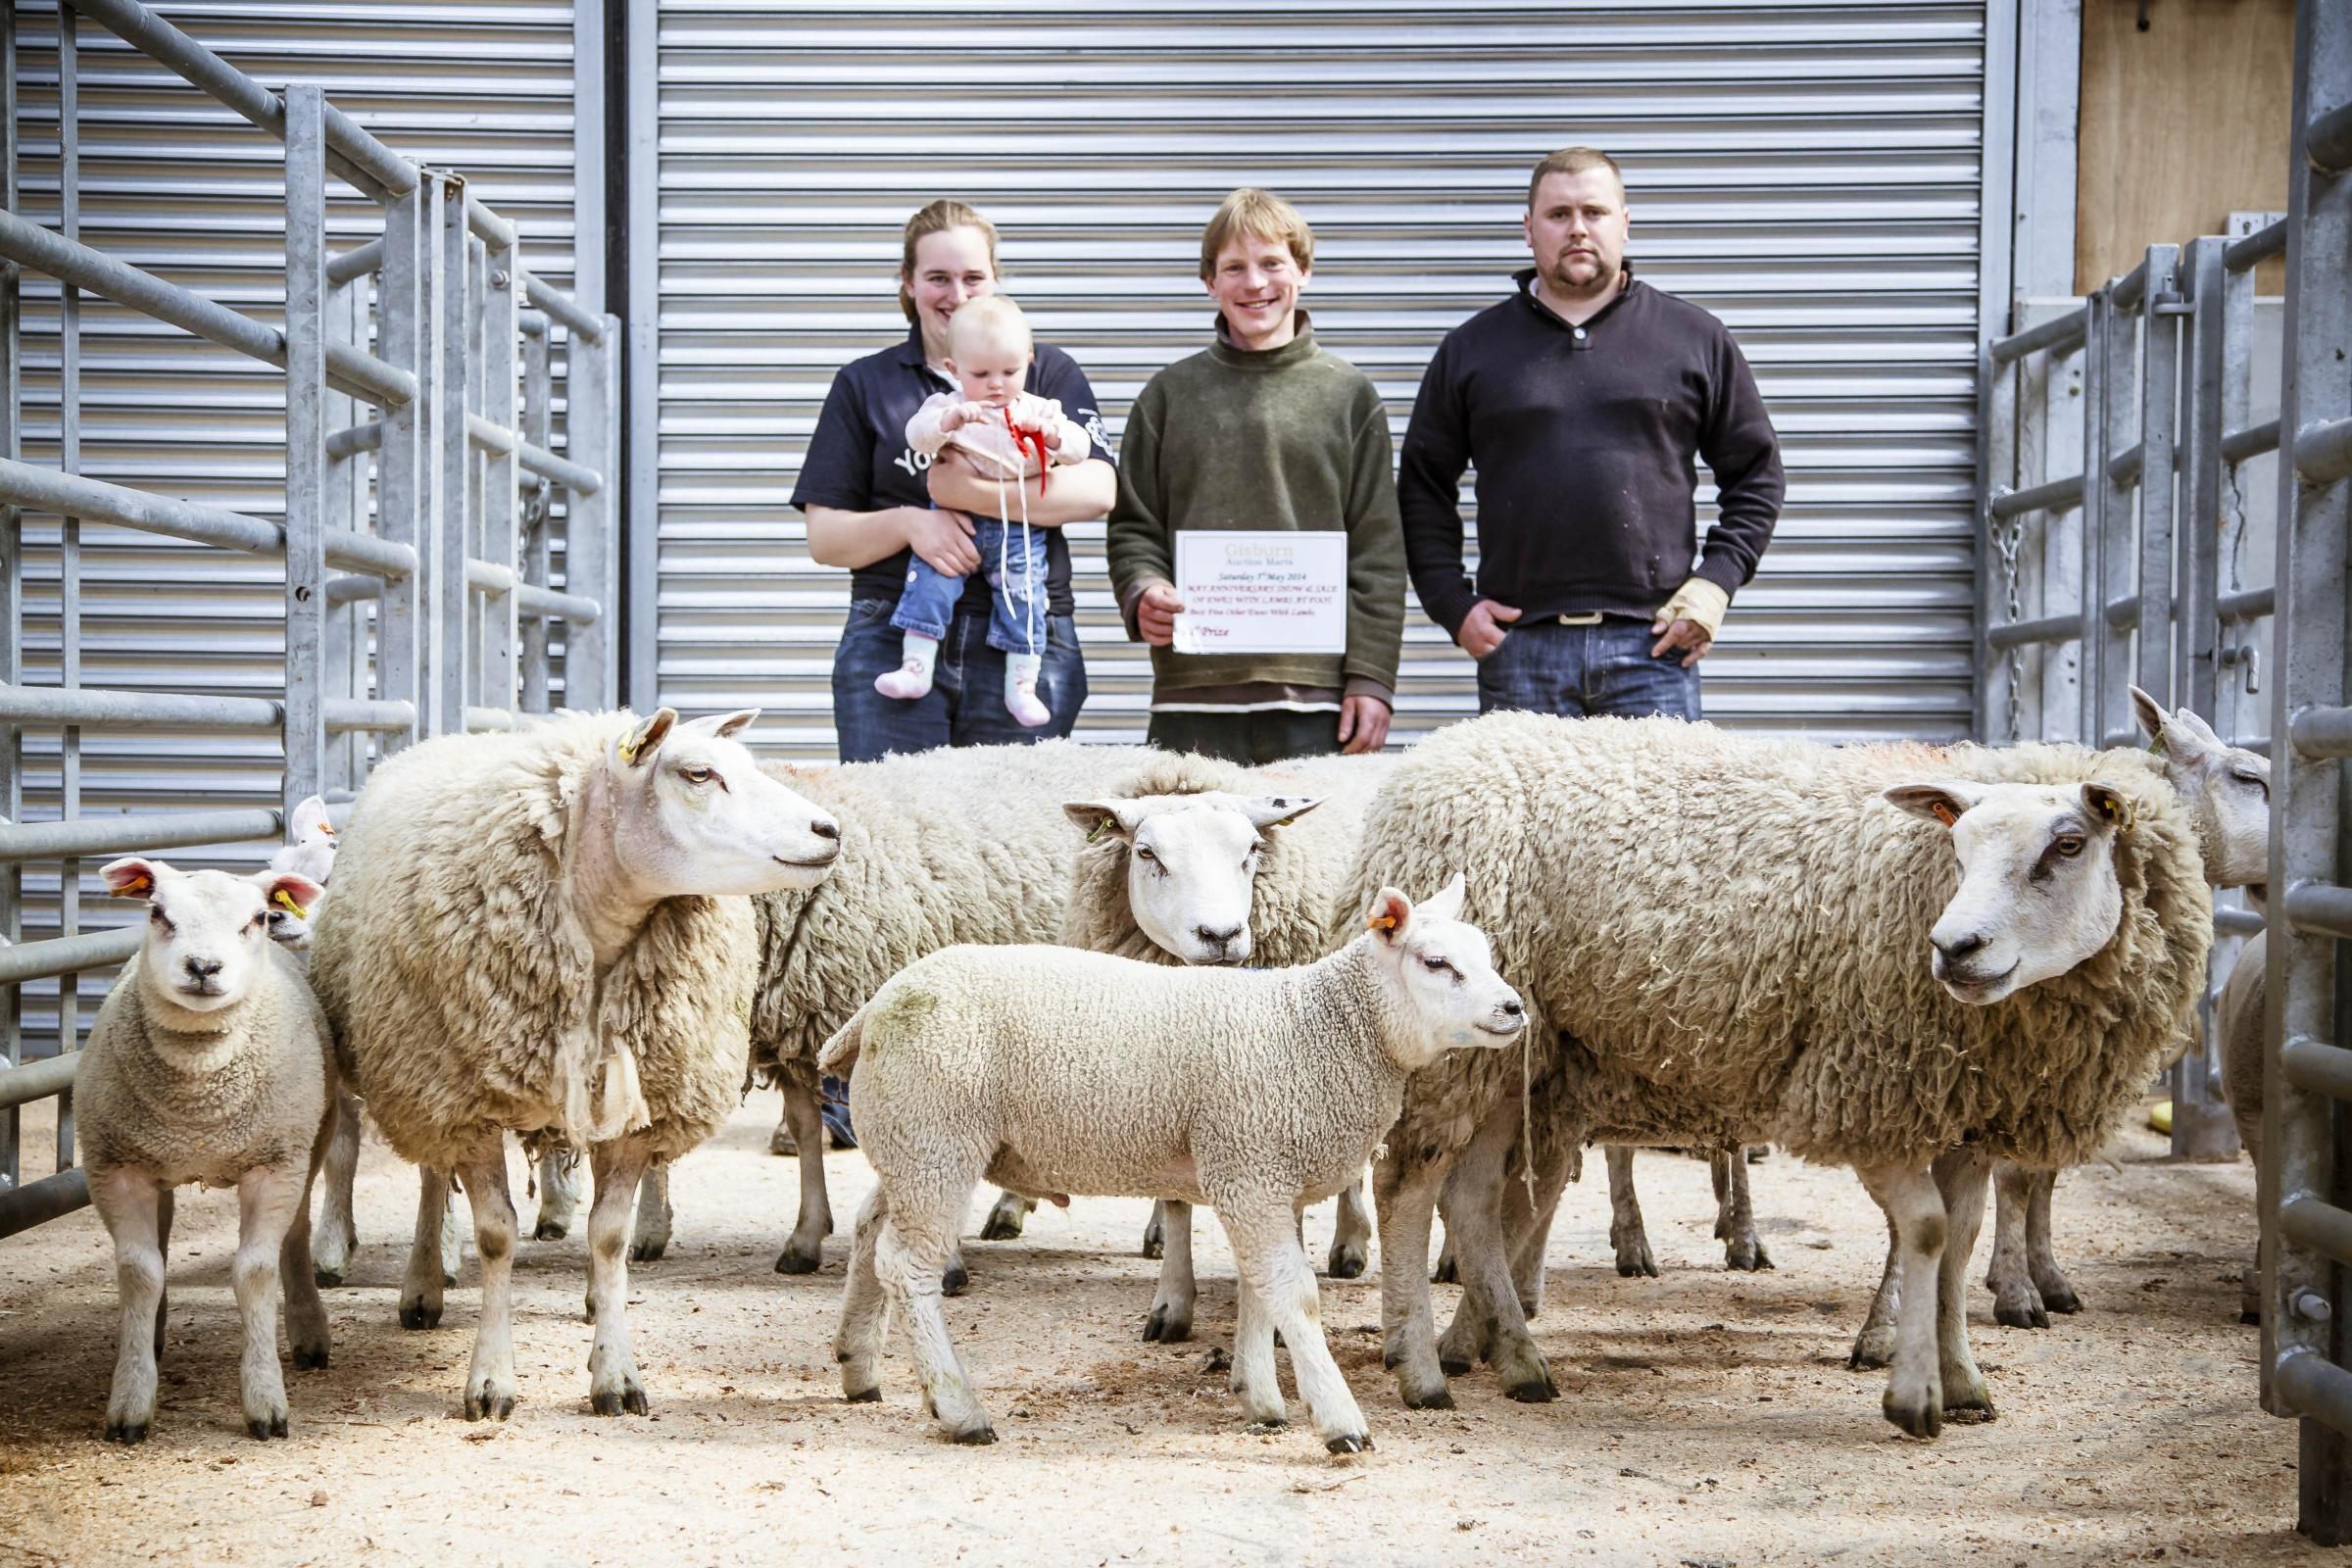 CHAMPION EWES: Anthony Thompson (centre) with his prize winning shearling ewes with lambs that topped at £470 pictured with his partner, Emma Dalby, and judge Chris Hewitt.